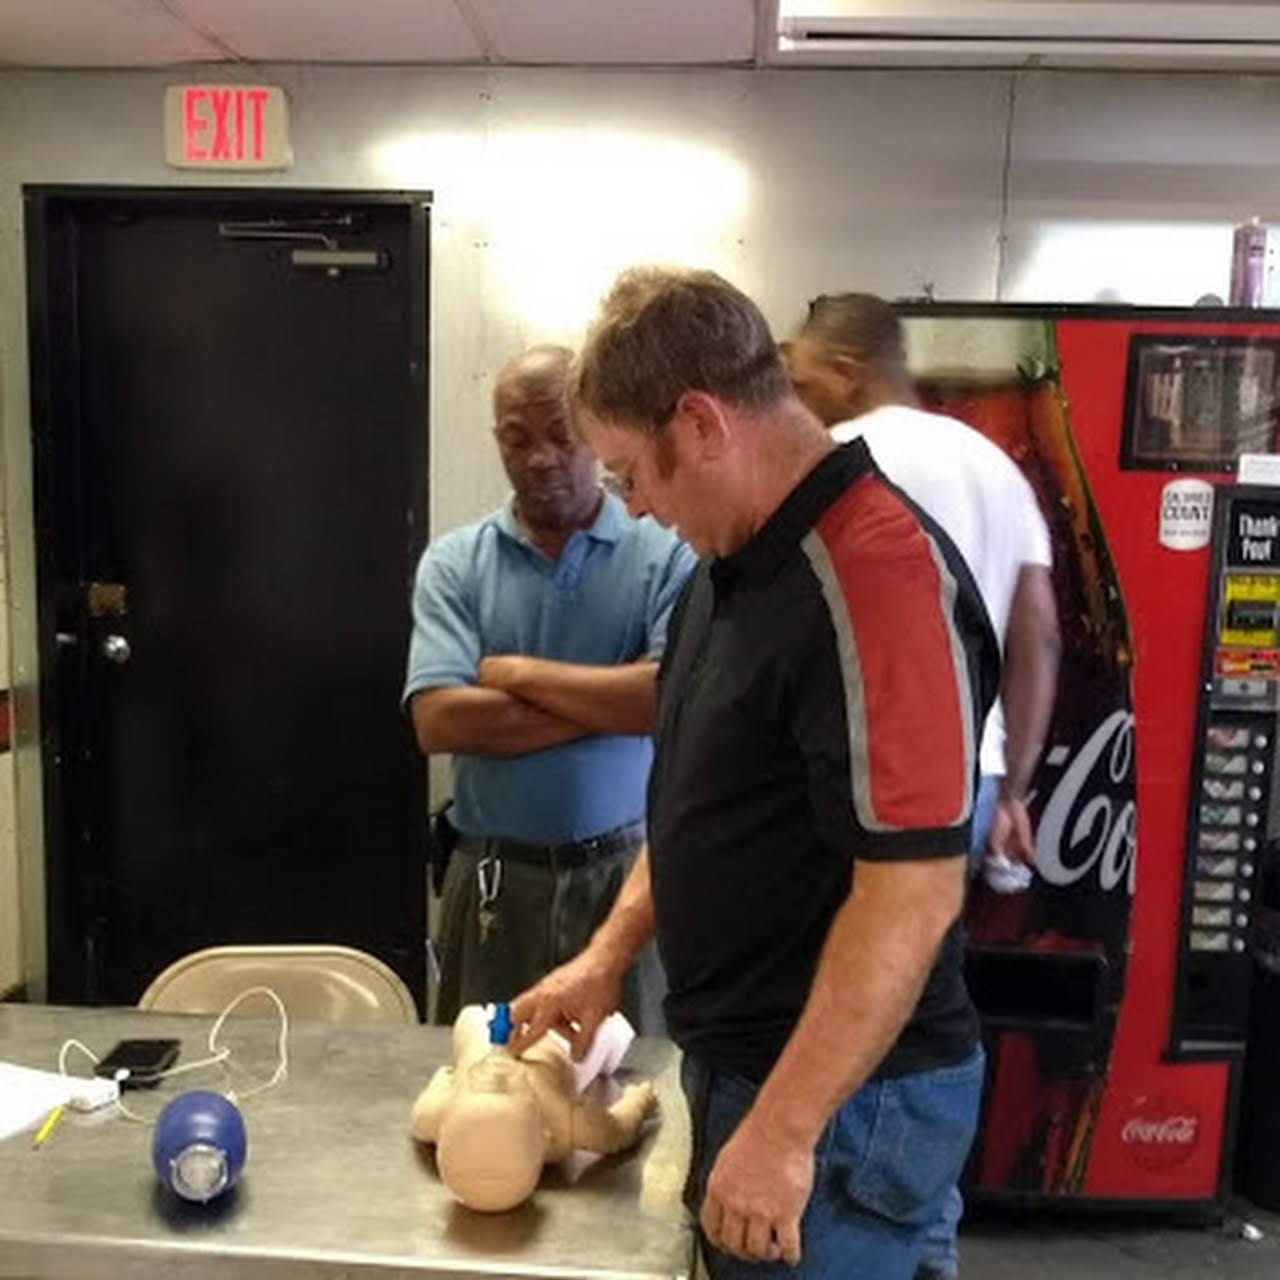 Pulse Cpr And First Aid School Health Consultant Teaching Cpr In